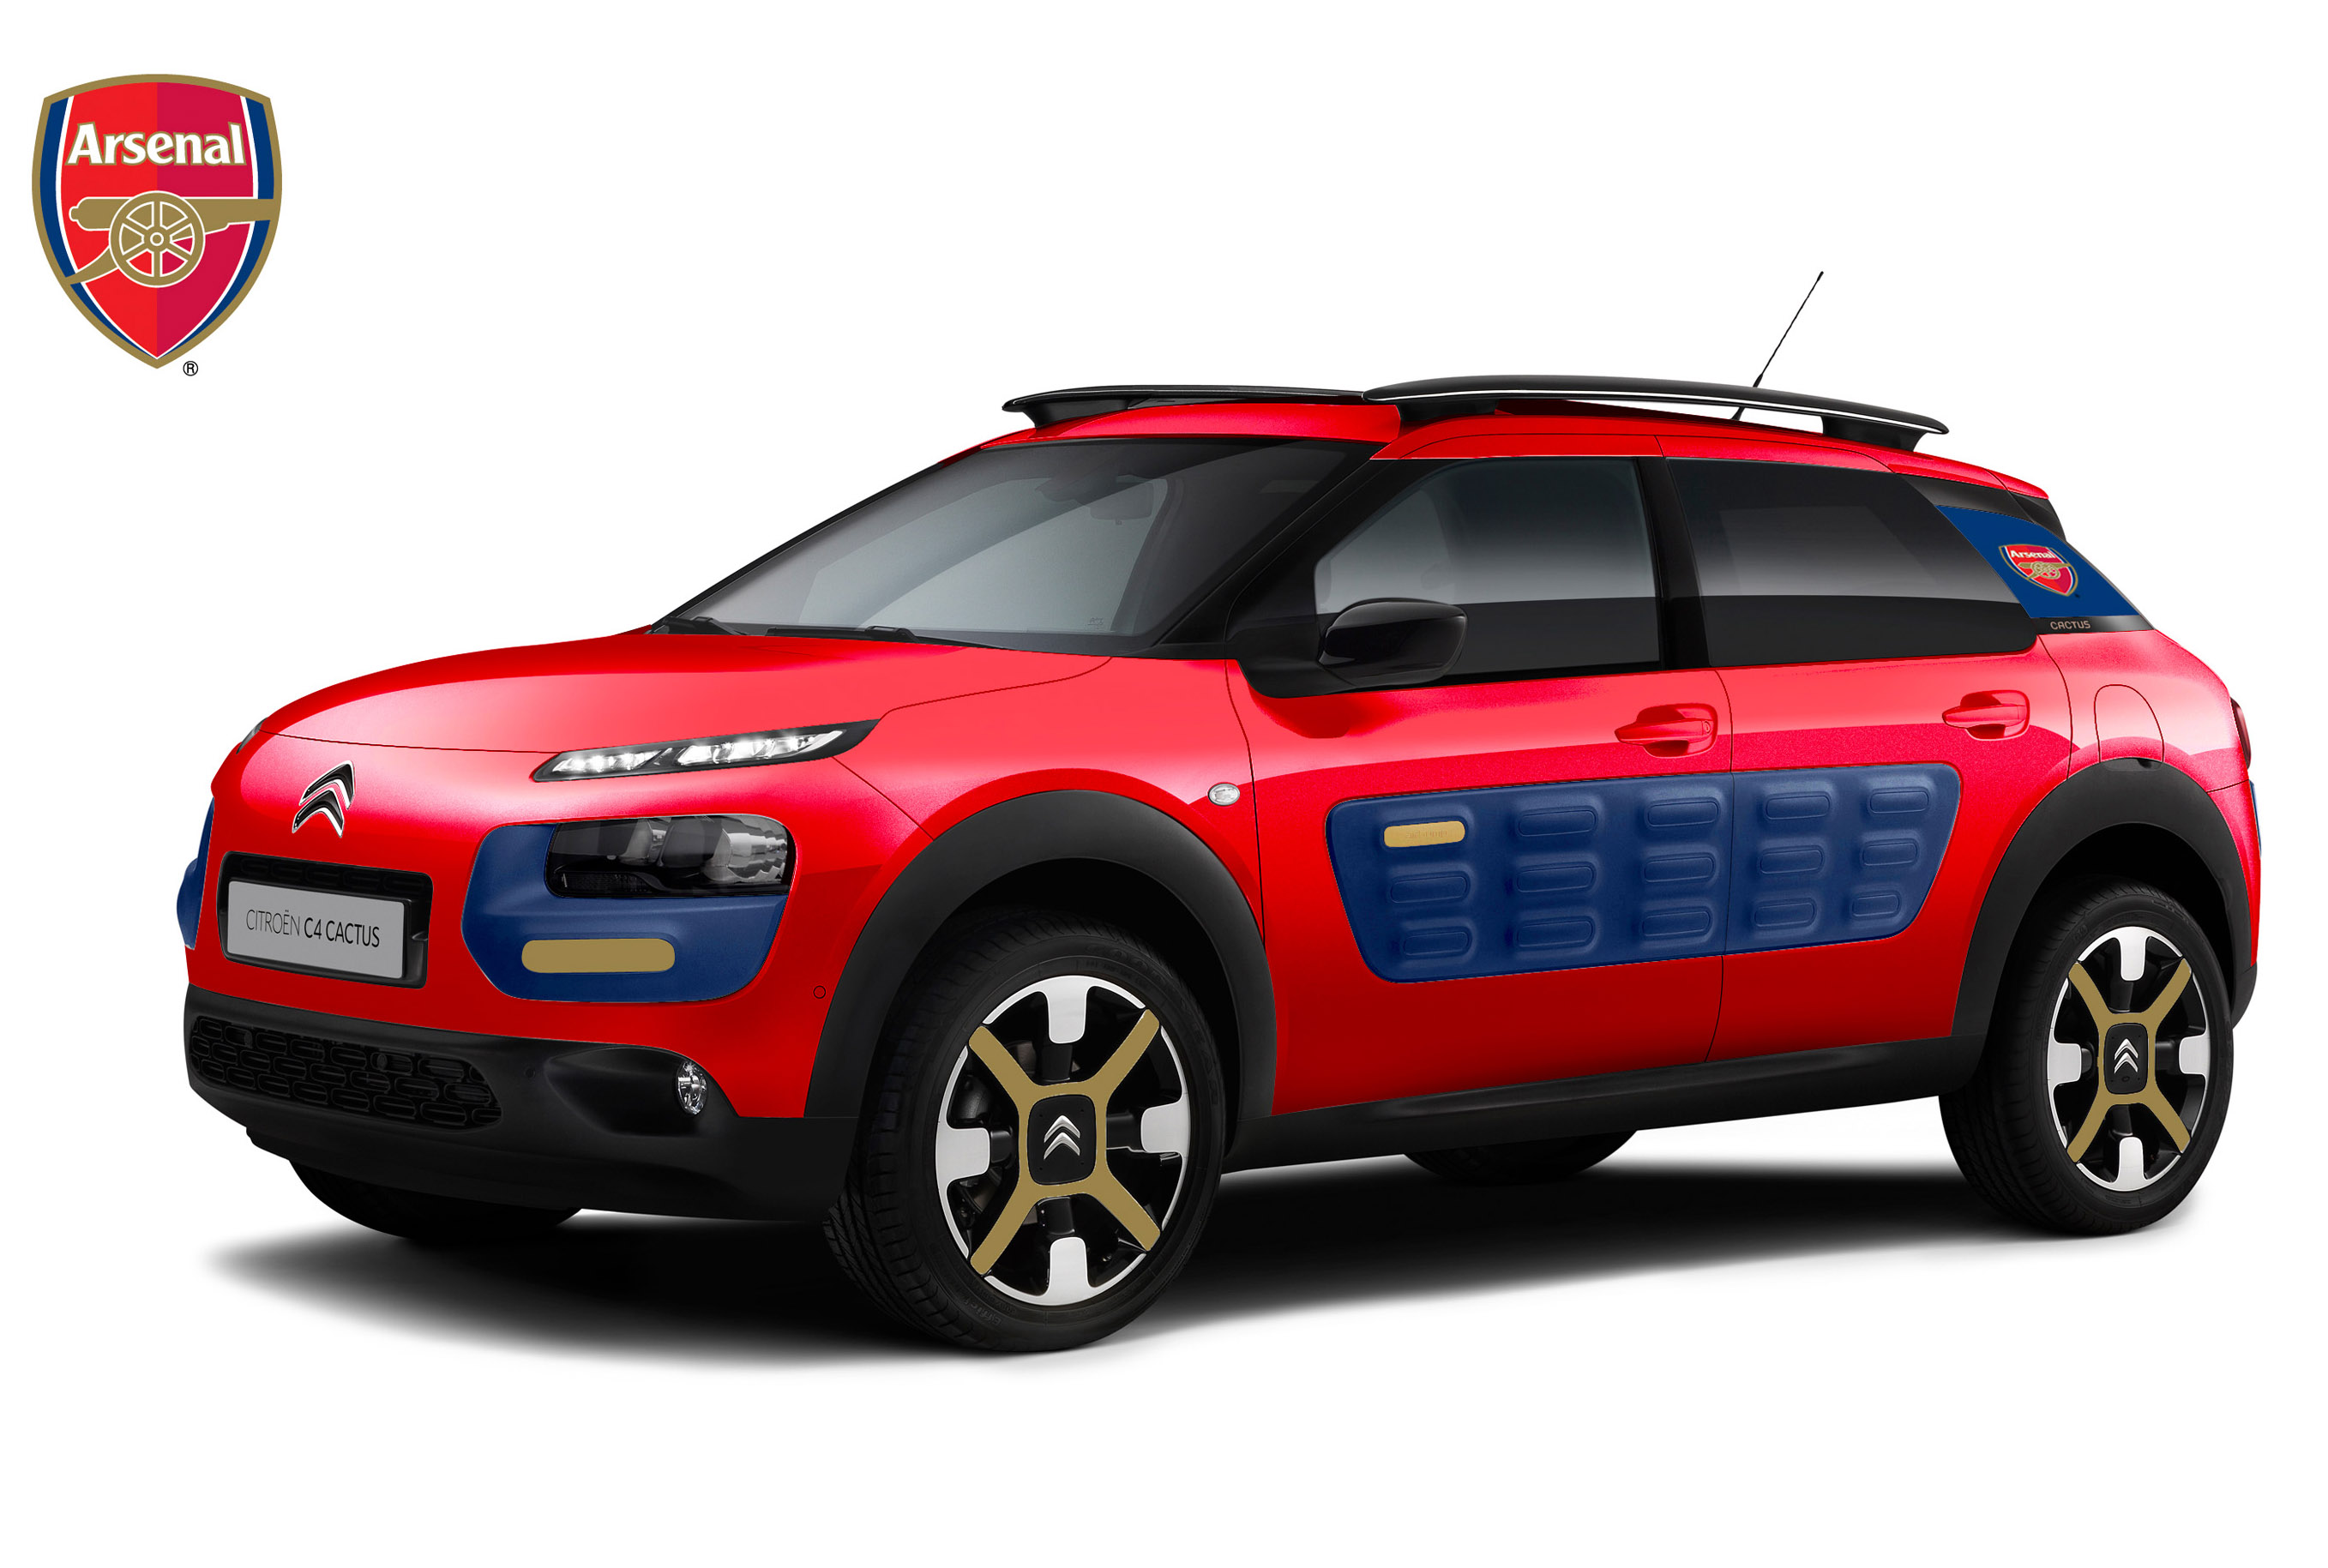 2014 citroen c4 cactus arsenal edition. Black Bedroom Furniture Sets. Home Design Ideas